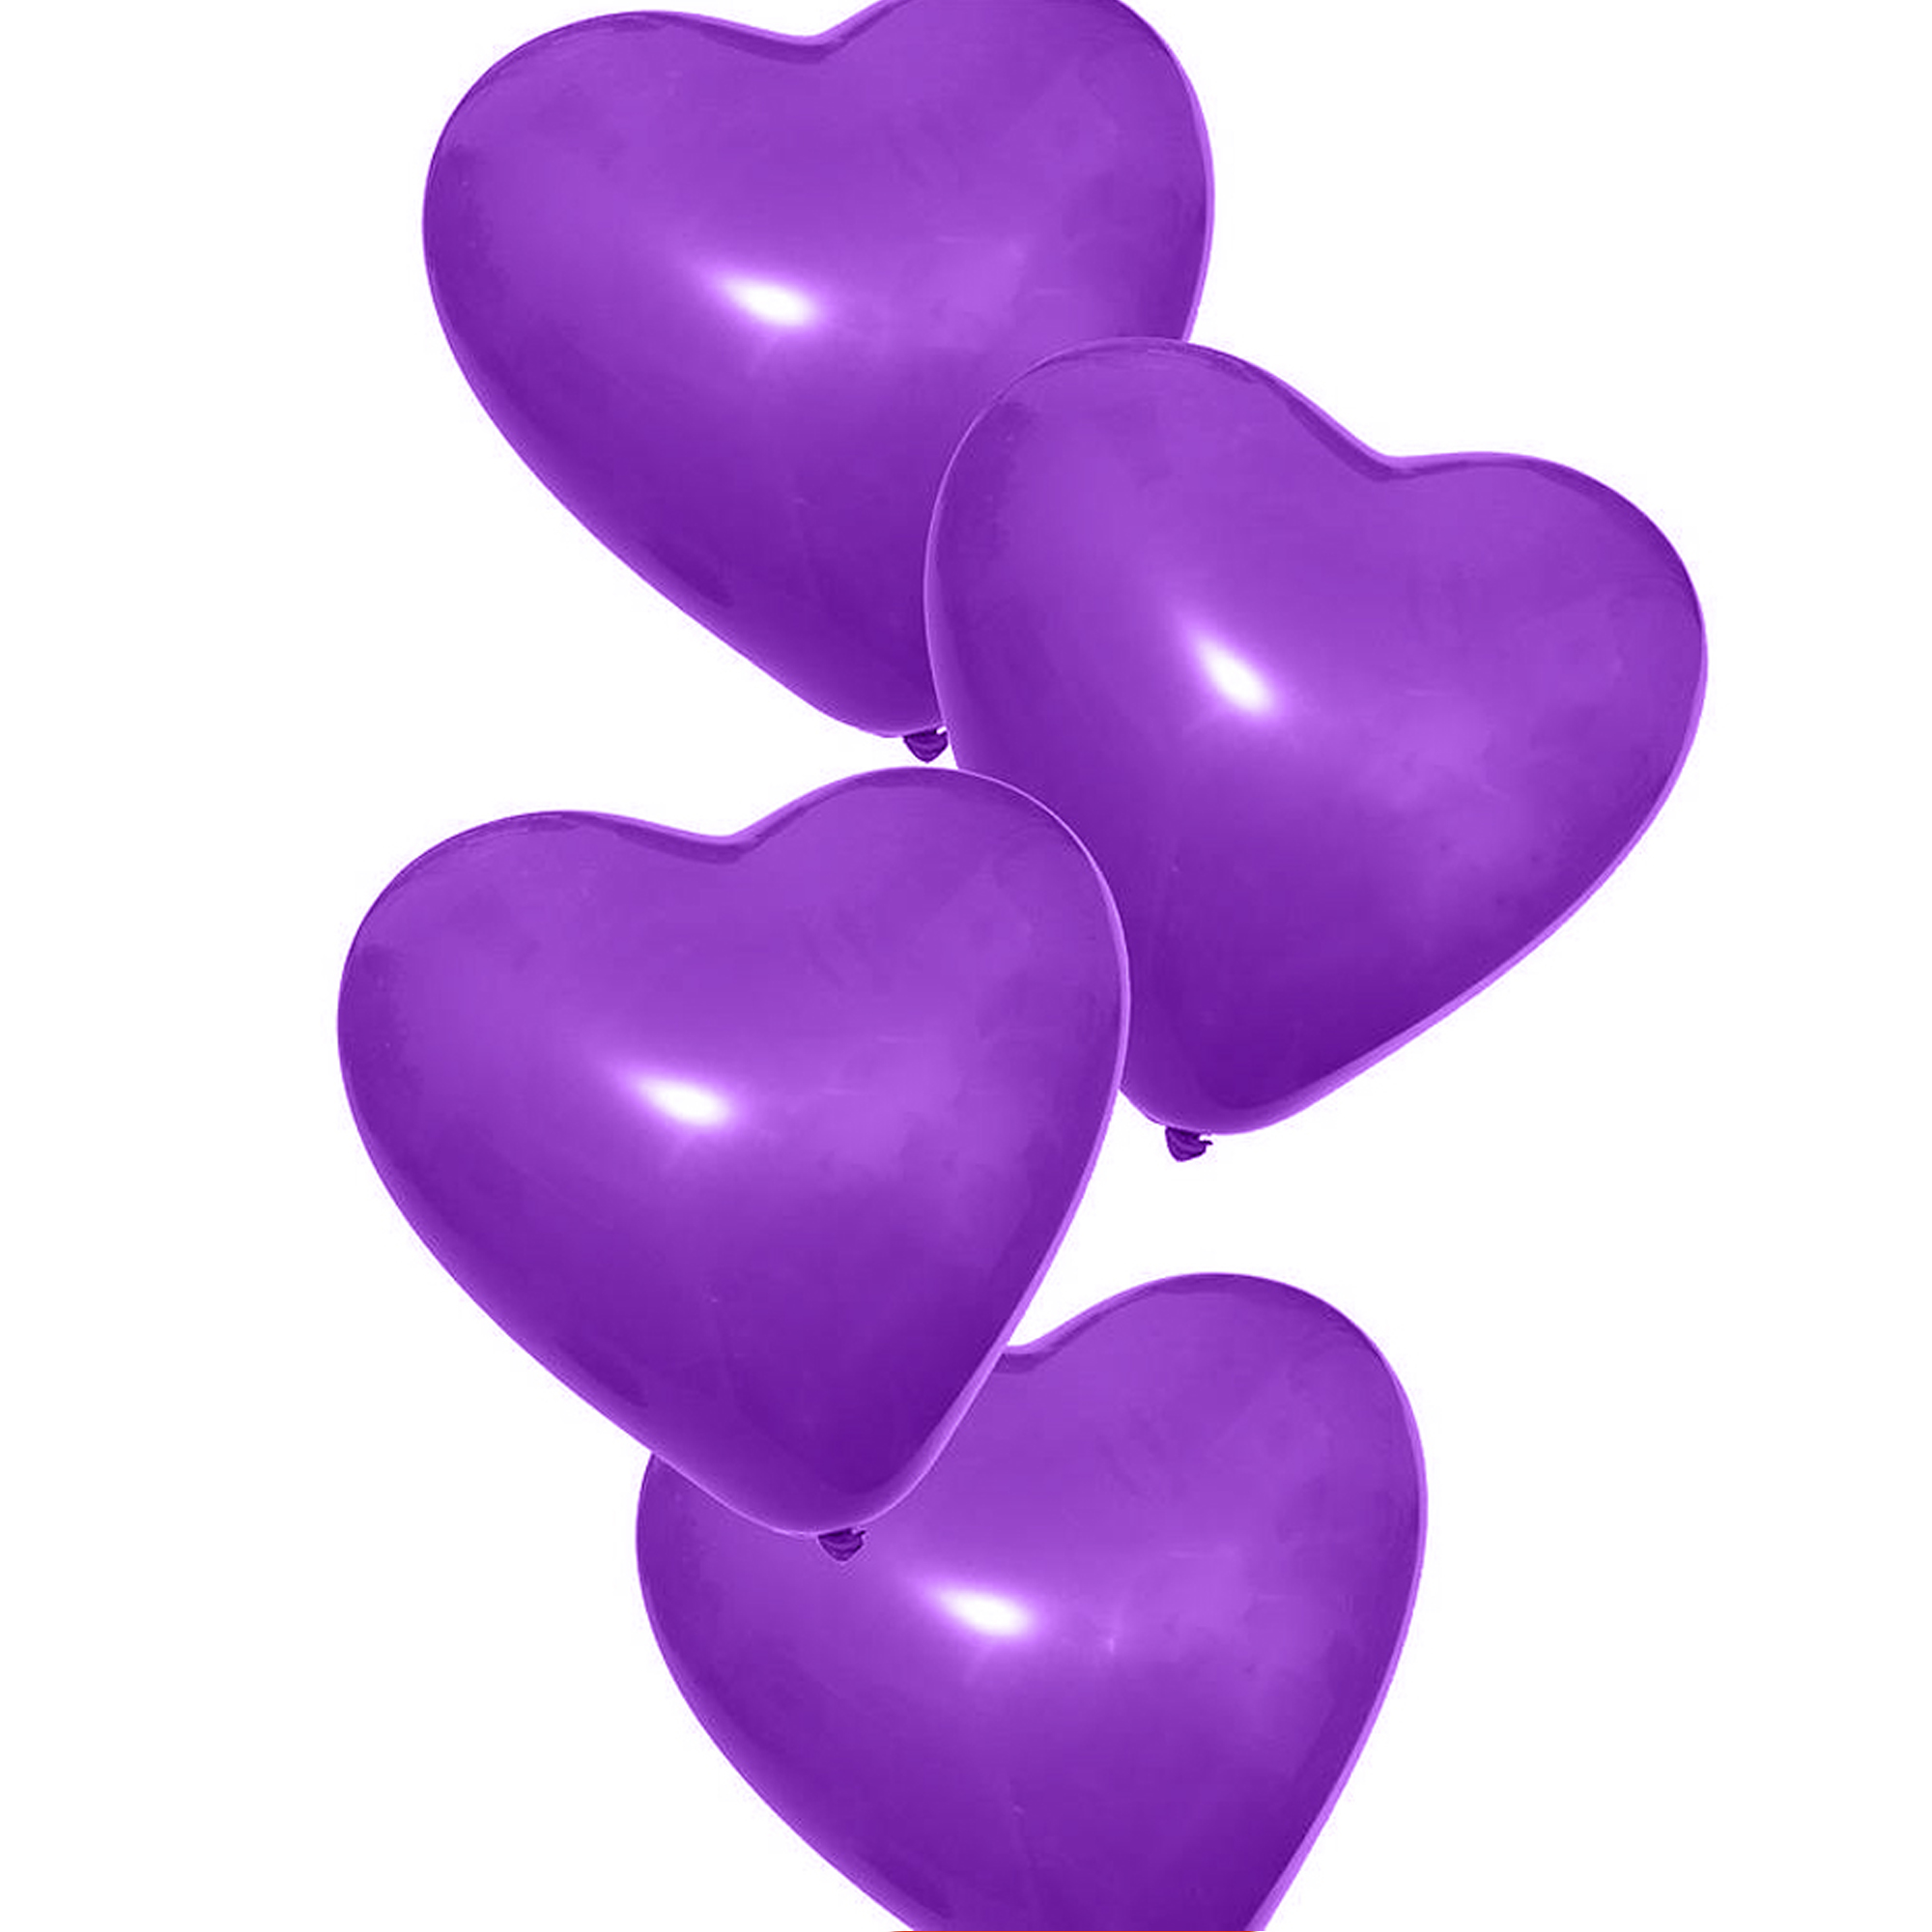 25 x Heart Shaped Party Balloons Latex Balloon Heart Balloon for Wedding Birthday Propose Anniversary Party, Purple